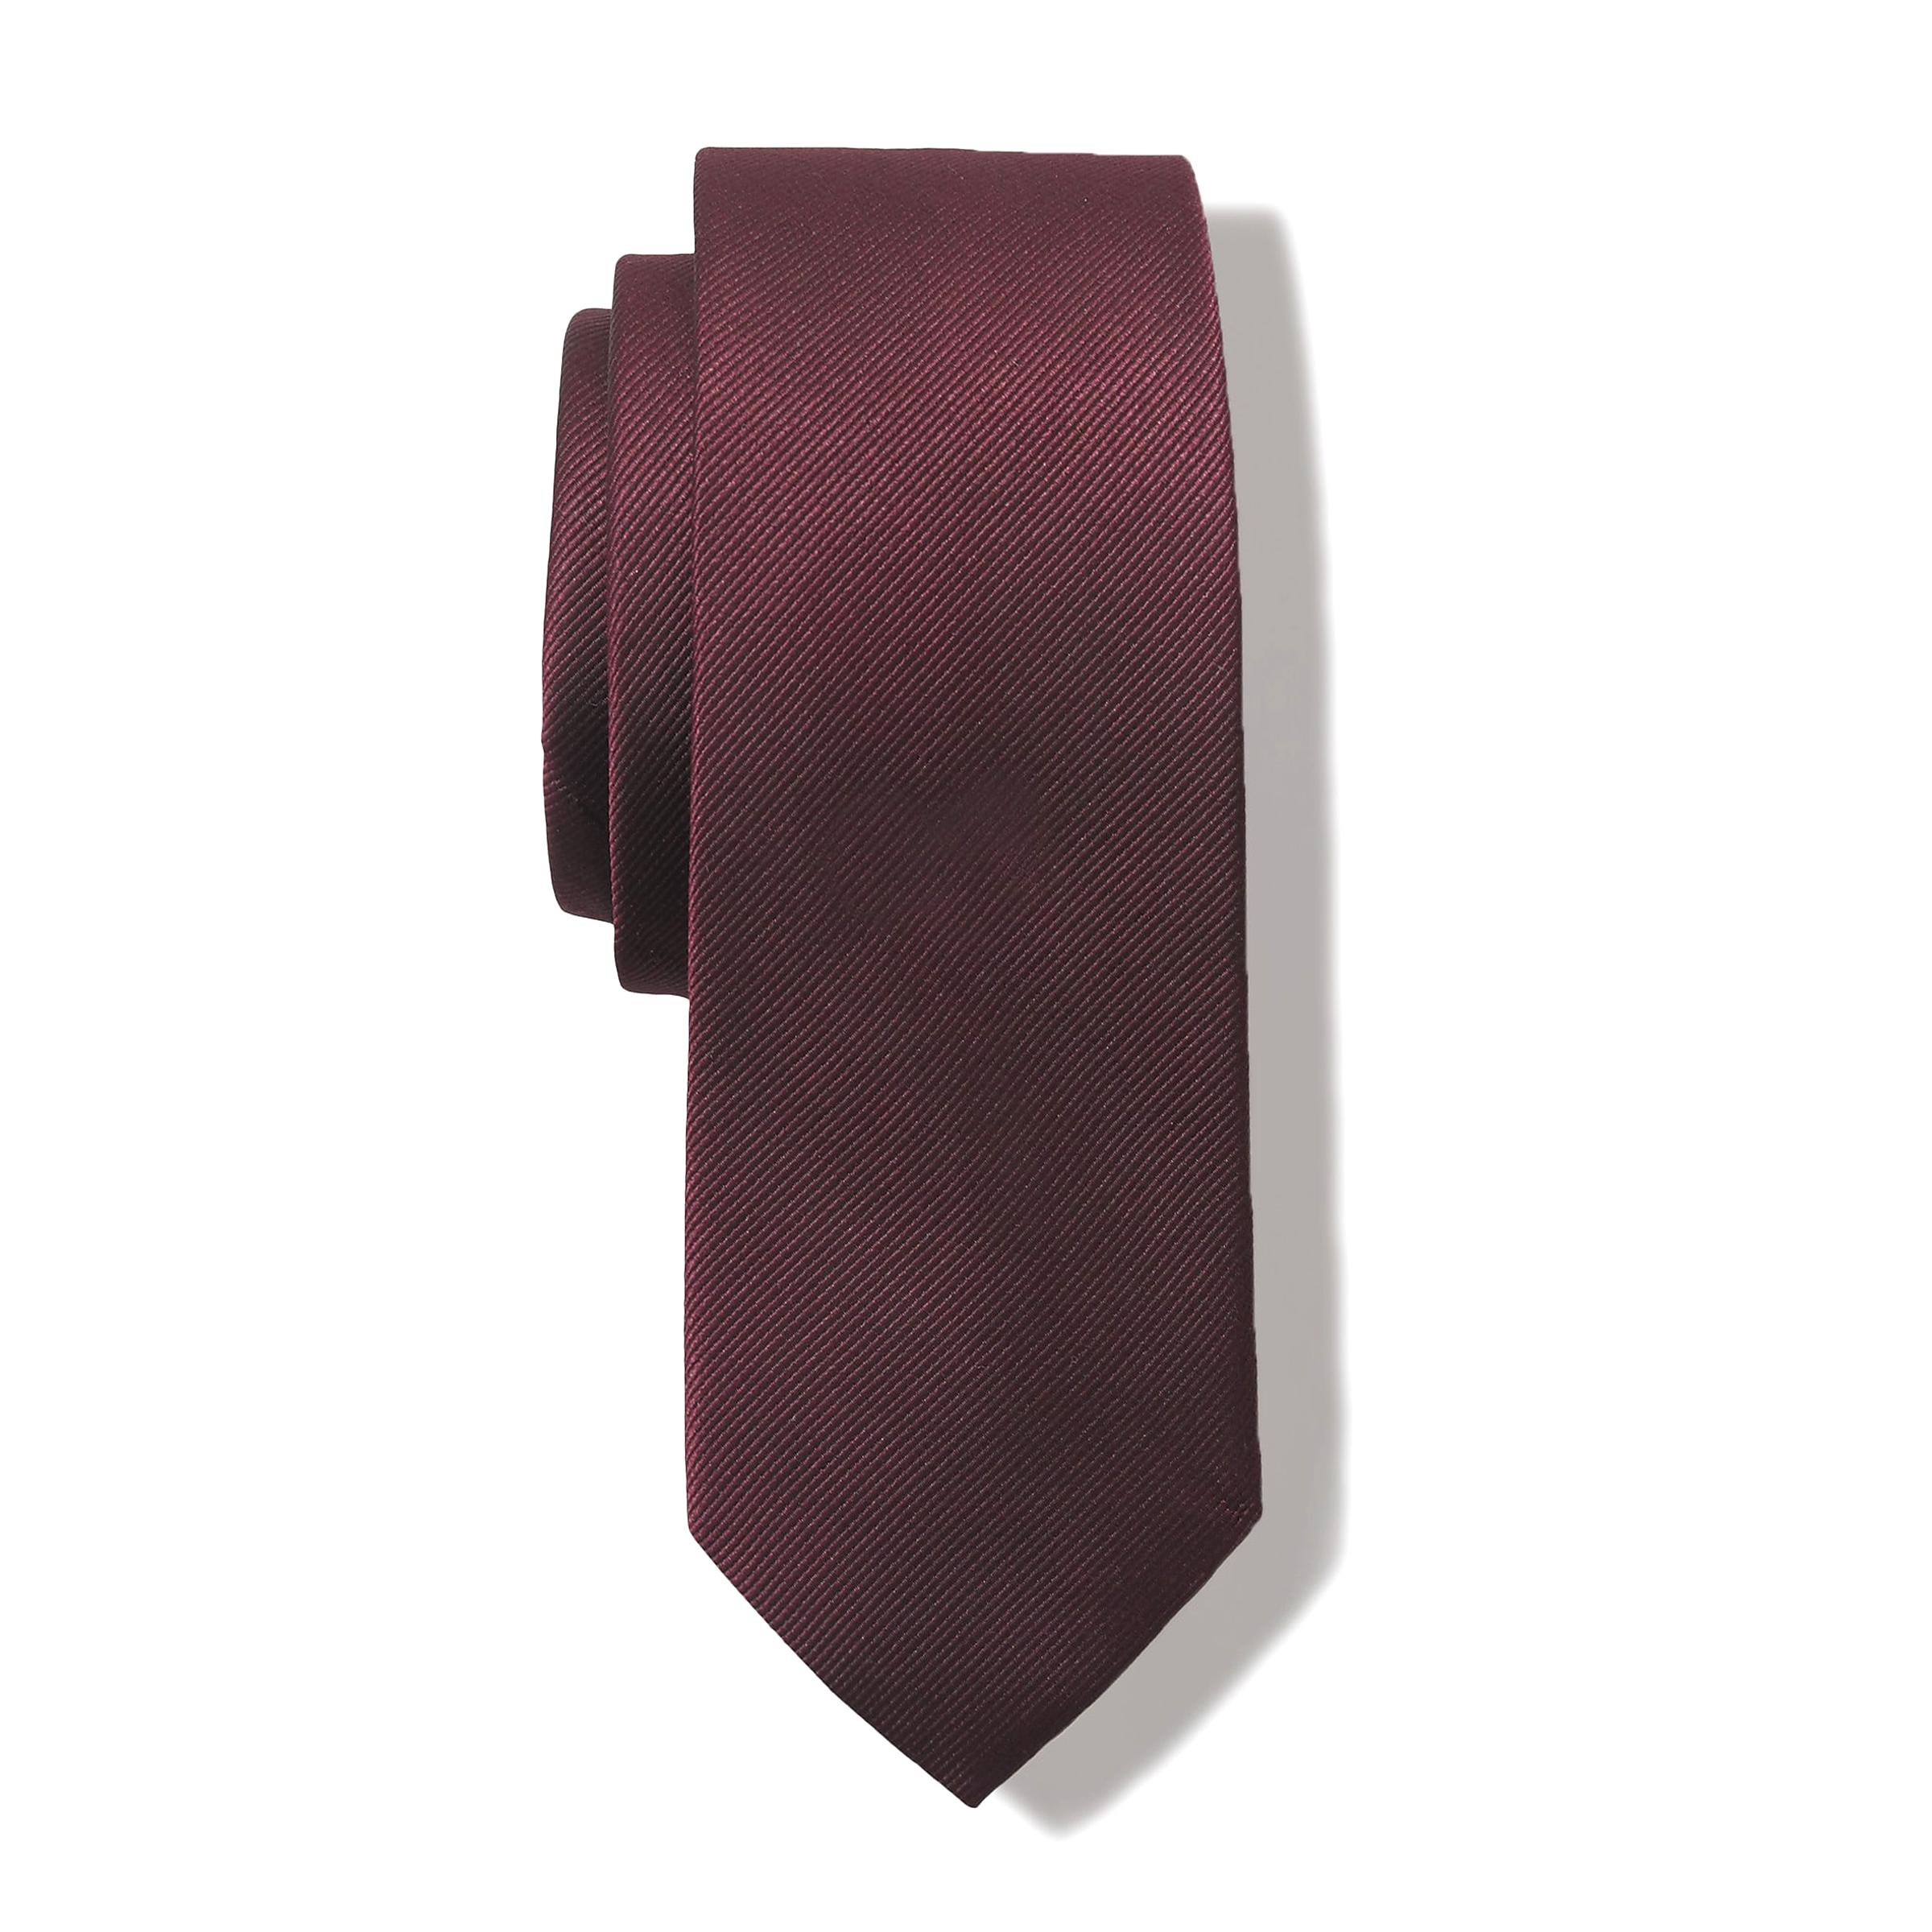 j crew tie for sale